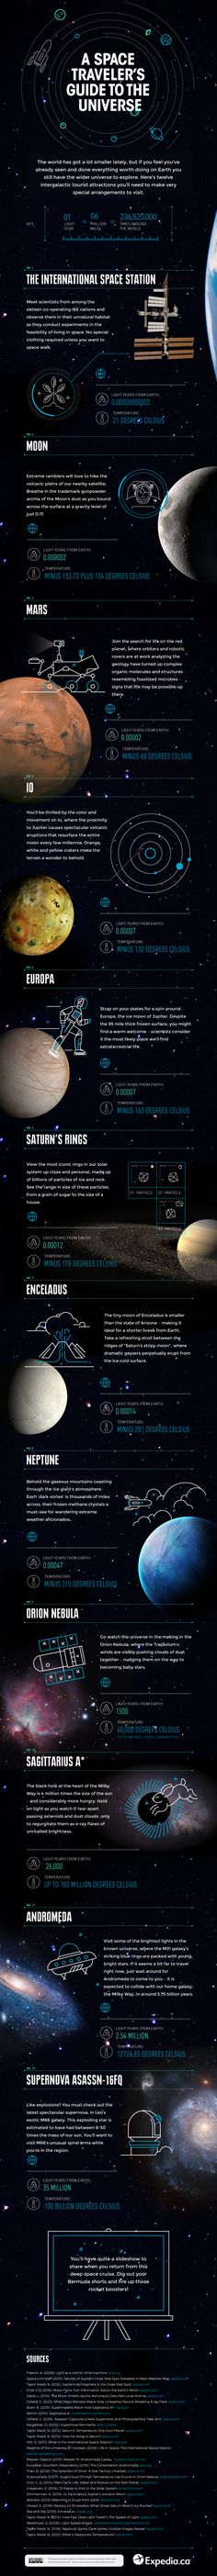 A Space Traveler's Guide To The Universe #Infographic #Space